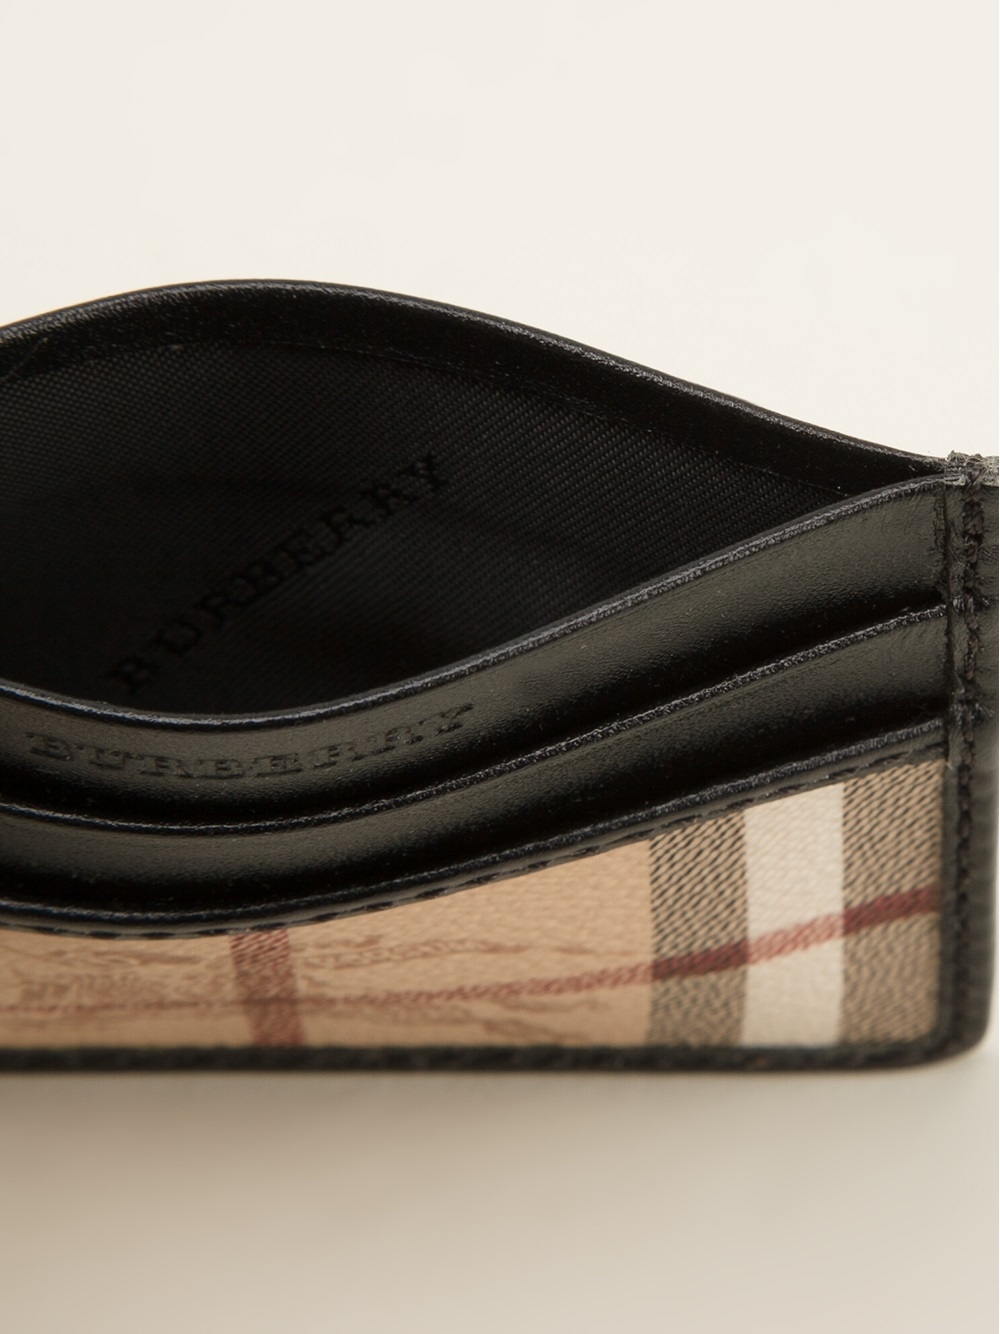 Burberry Card Holders On Sale